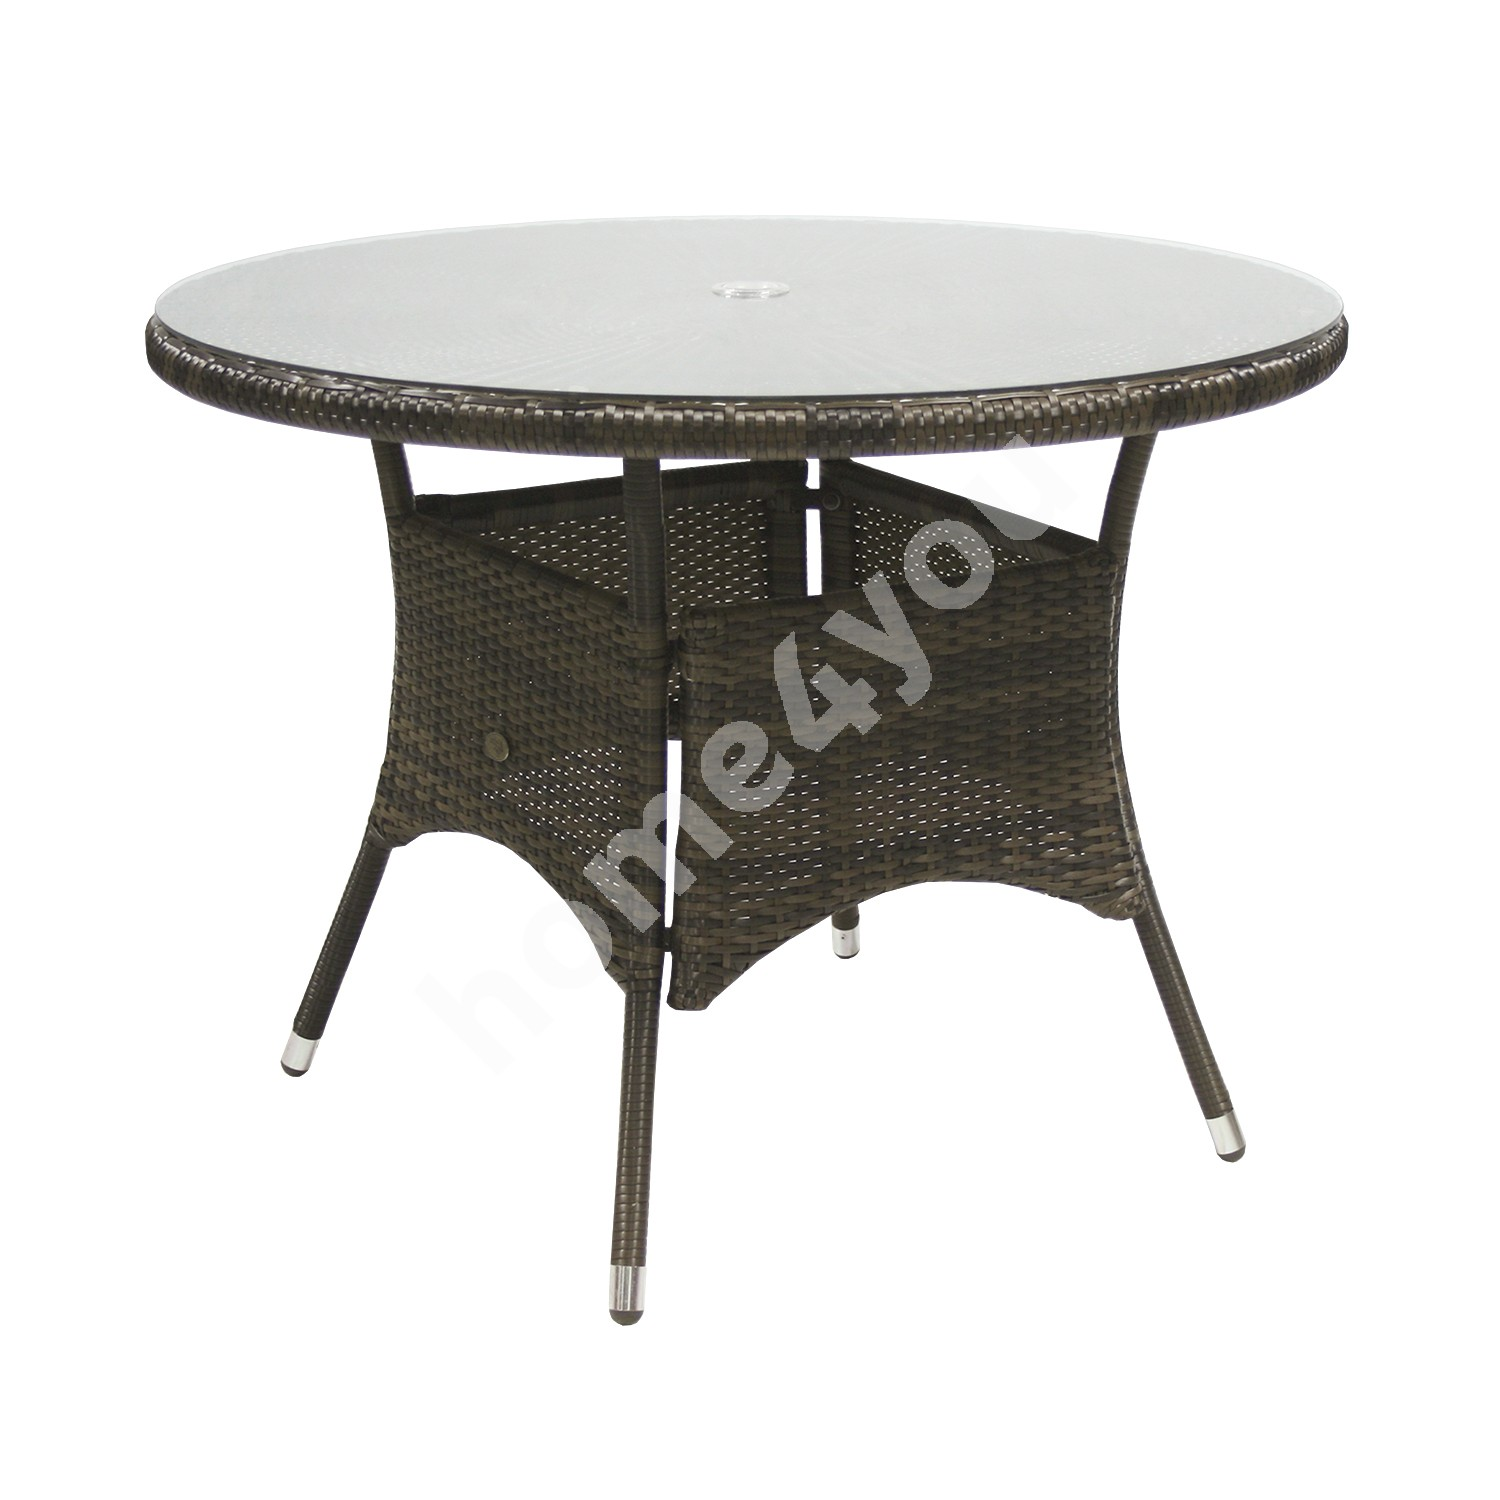 Table WICKER D100xH71cm, table top: clear glass, aluminum frame with plastic wicker, color: dark brown